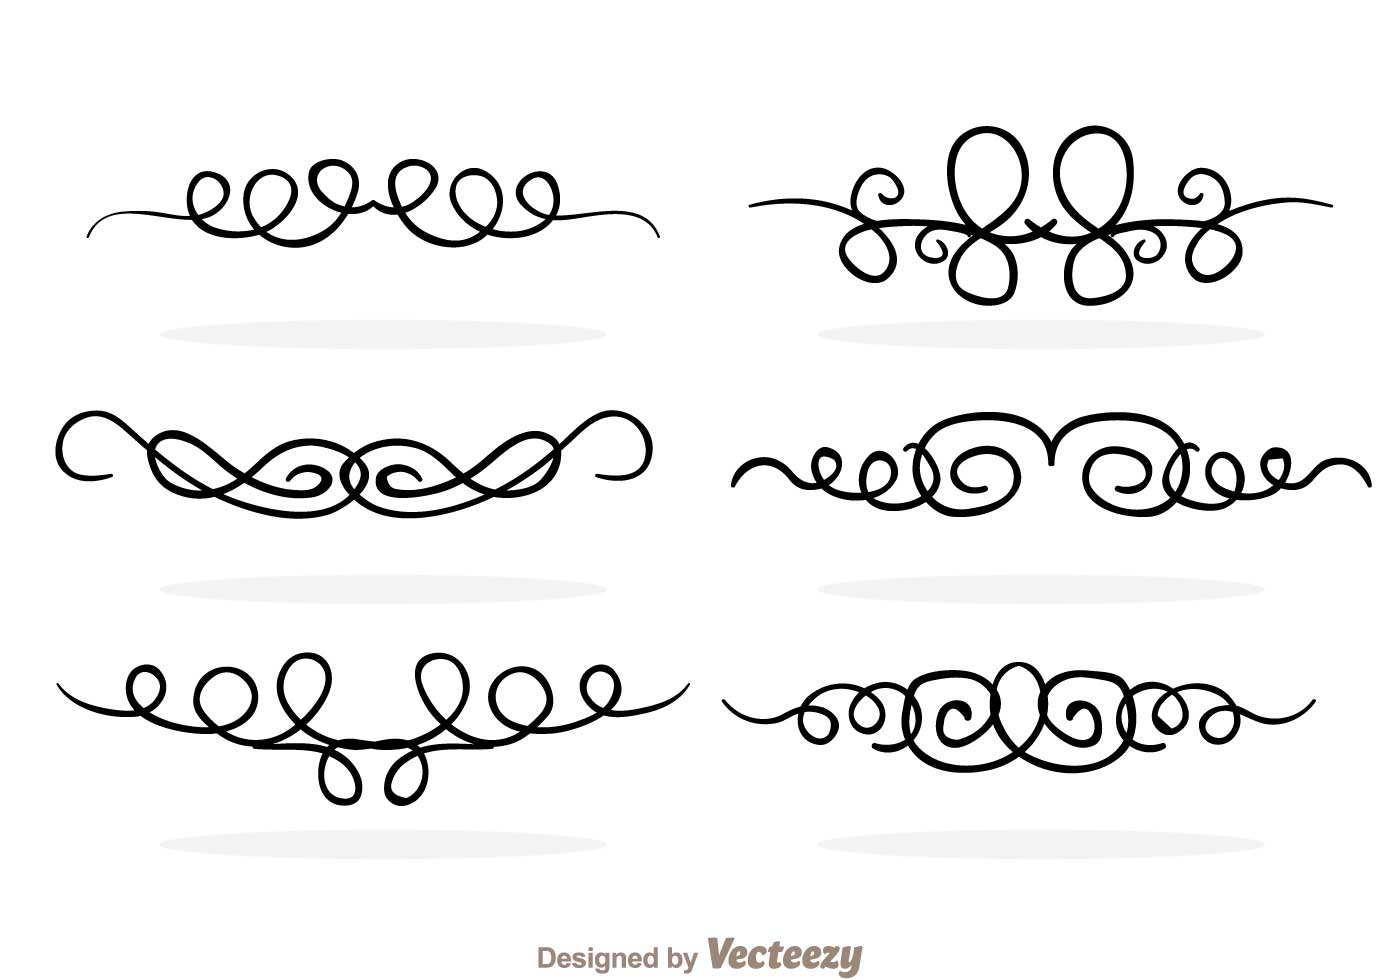 Vector Drawing Lines Quotes : Swirly line border vectors download free vector art